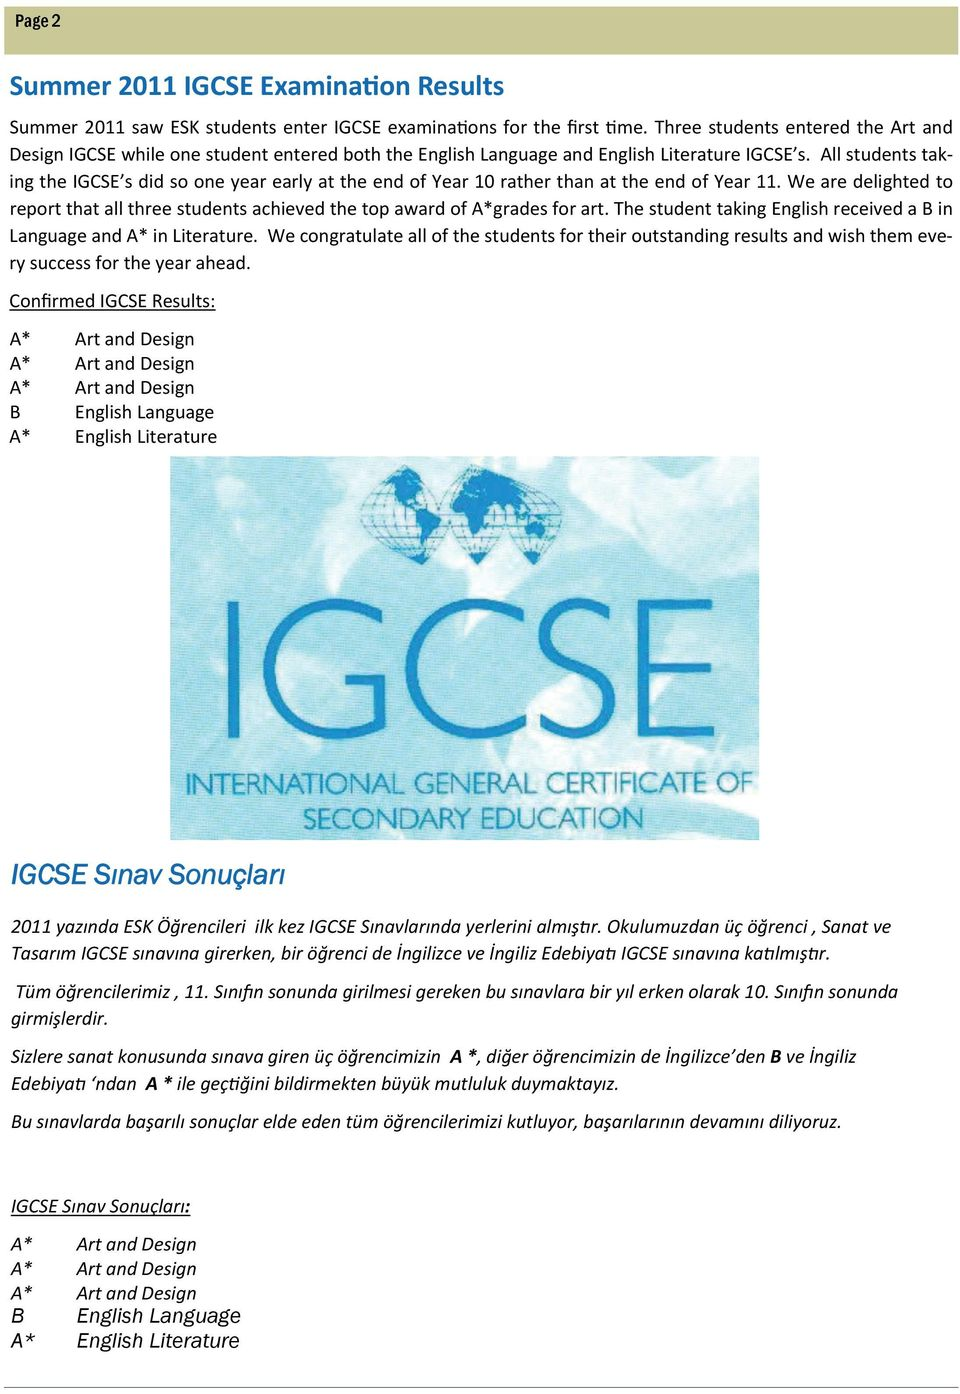 All students taking the IGCSE s did so one year early at the end of Year 10 rather than at the end of Year 11.